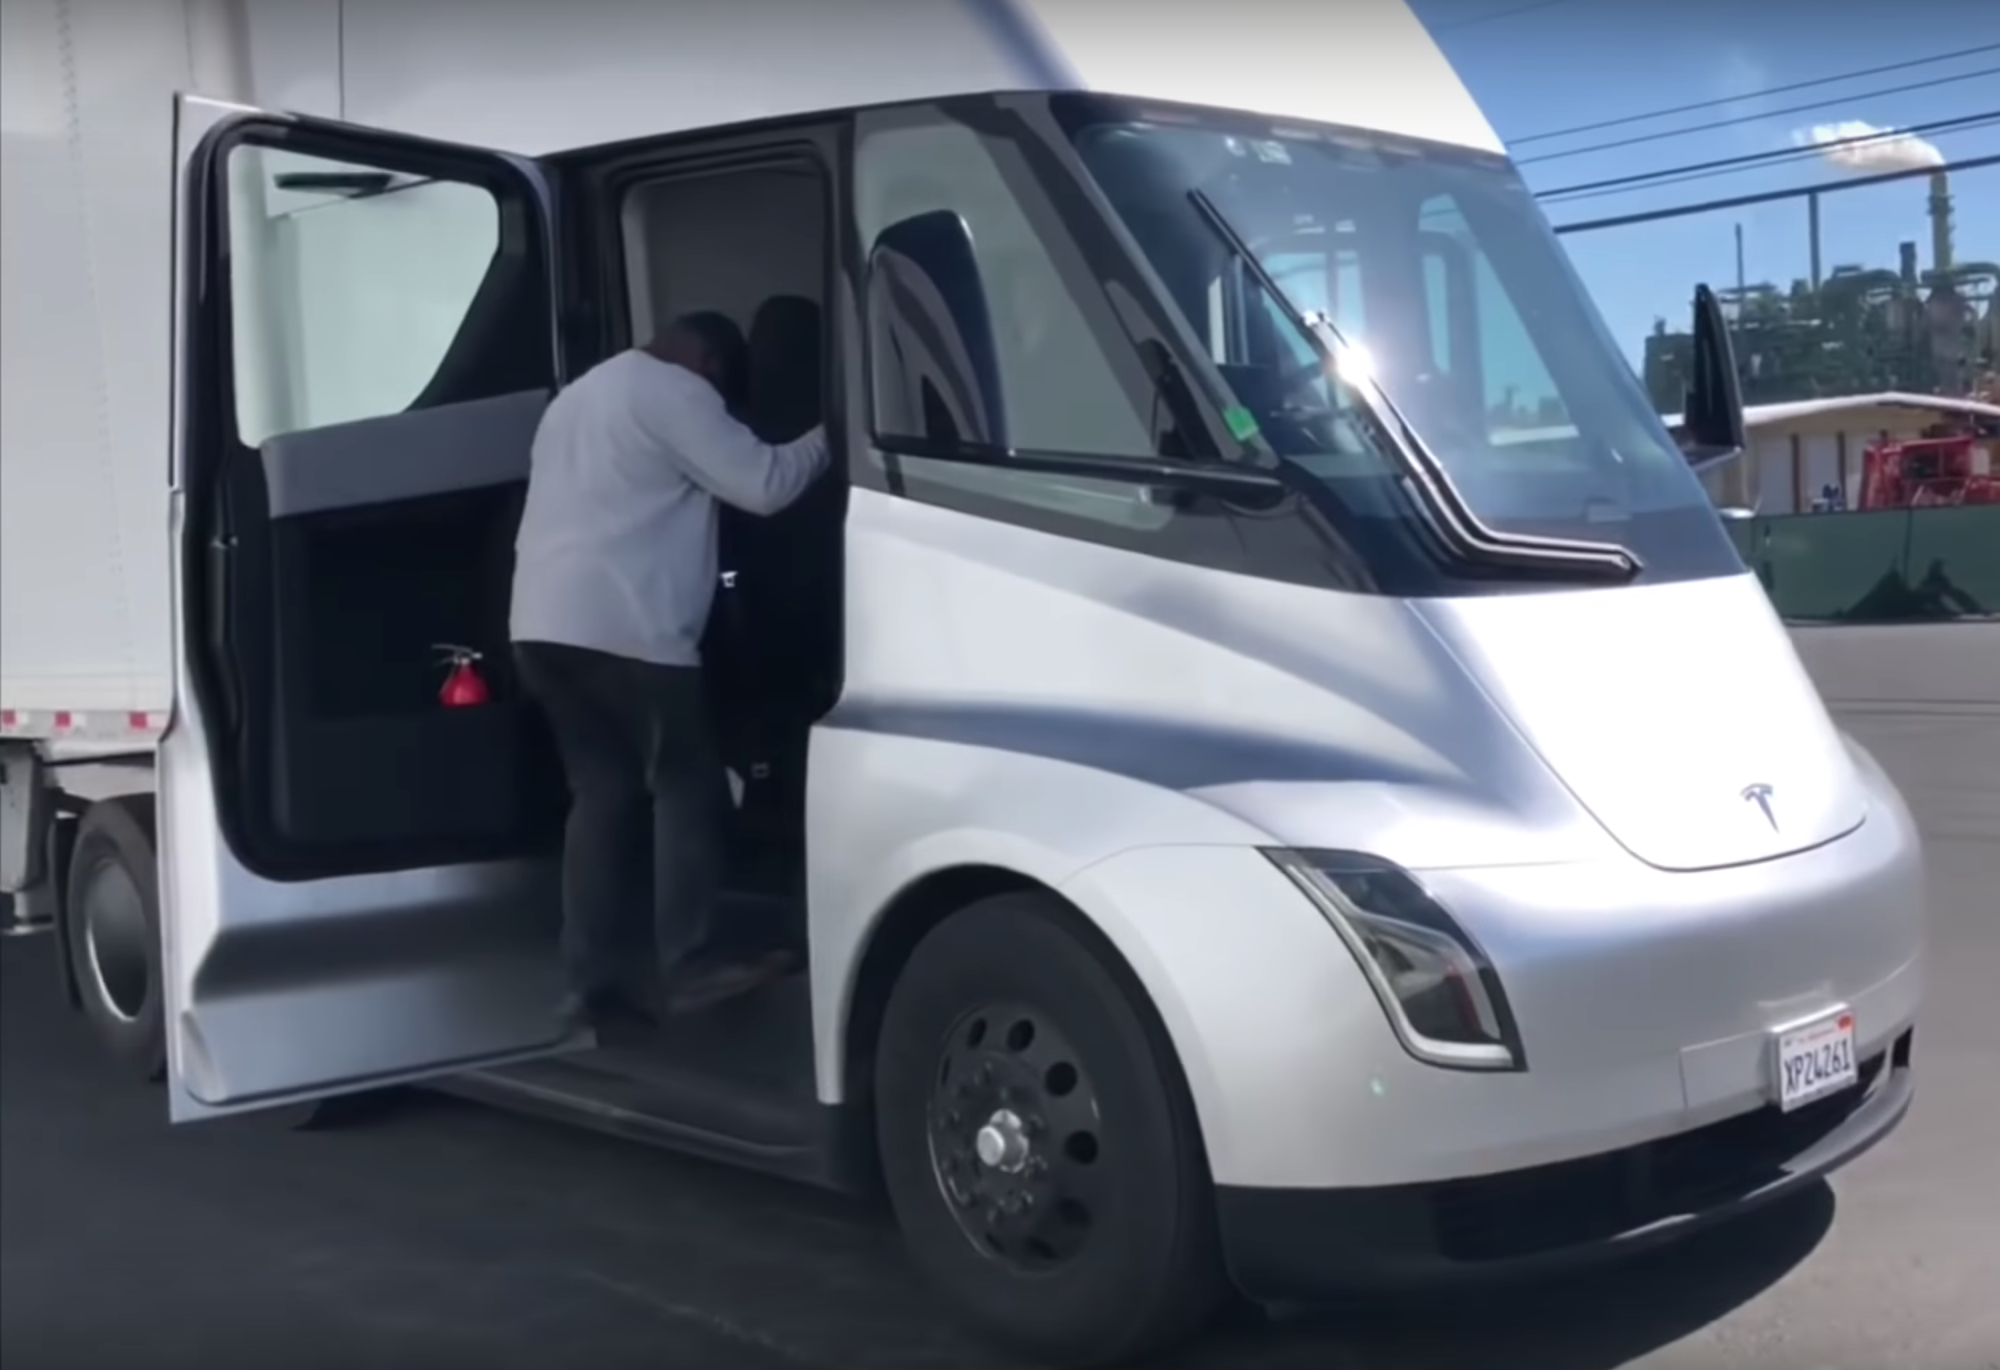 Were Allowed Inside The Cabins Of Tesla Semi Truck Immediately Before Public Reveal Event Back In November 2017 On Condition That No Photo